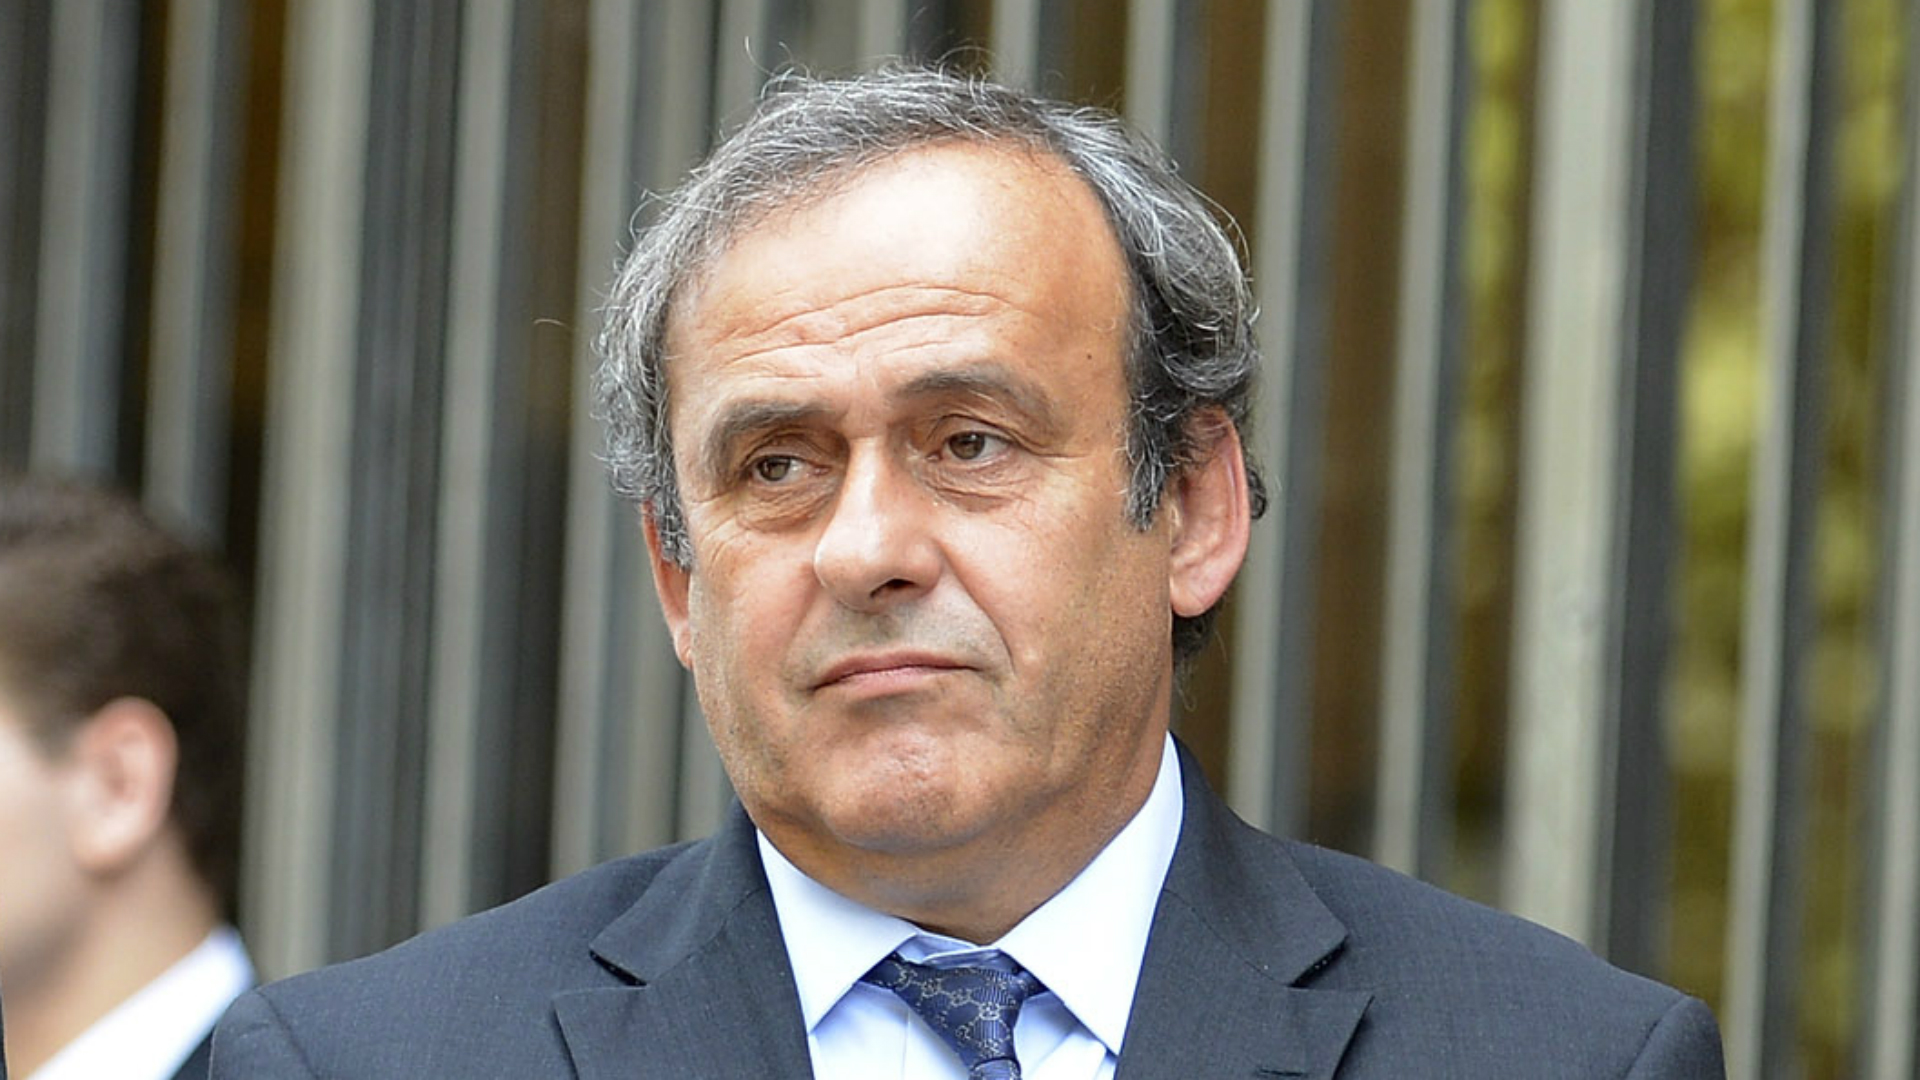 Platini 'absolutely confident about future', insists lawyer